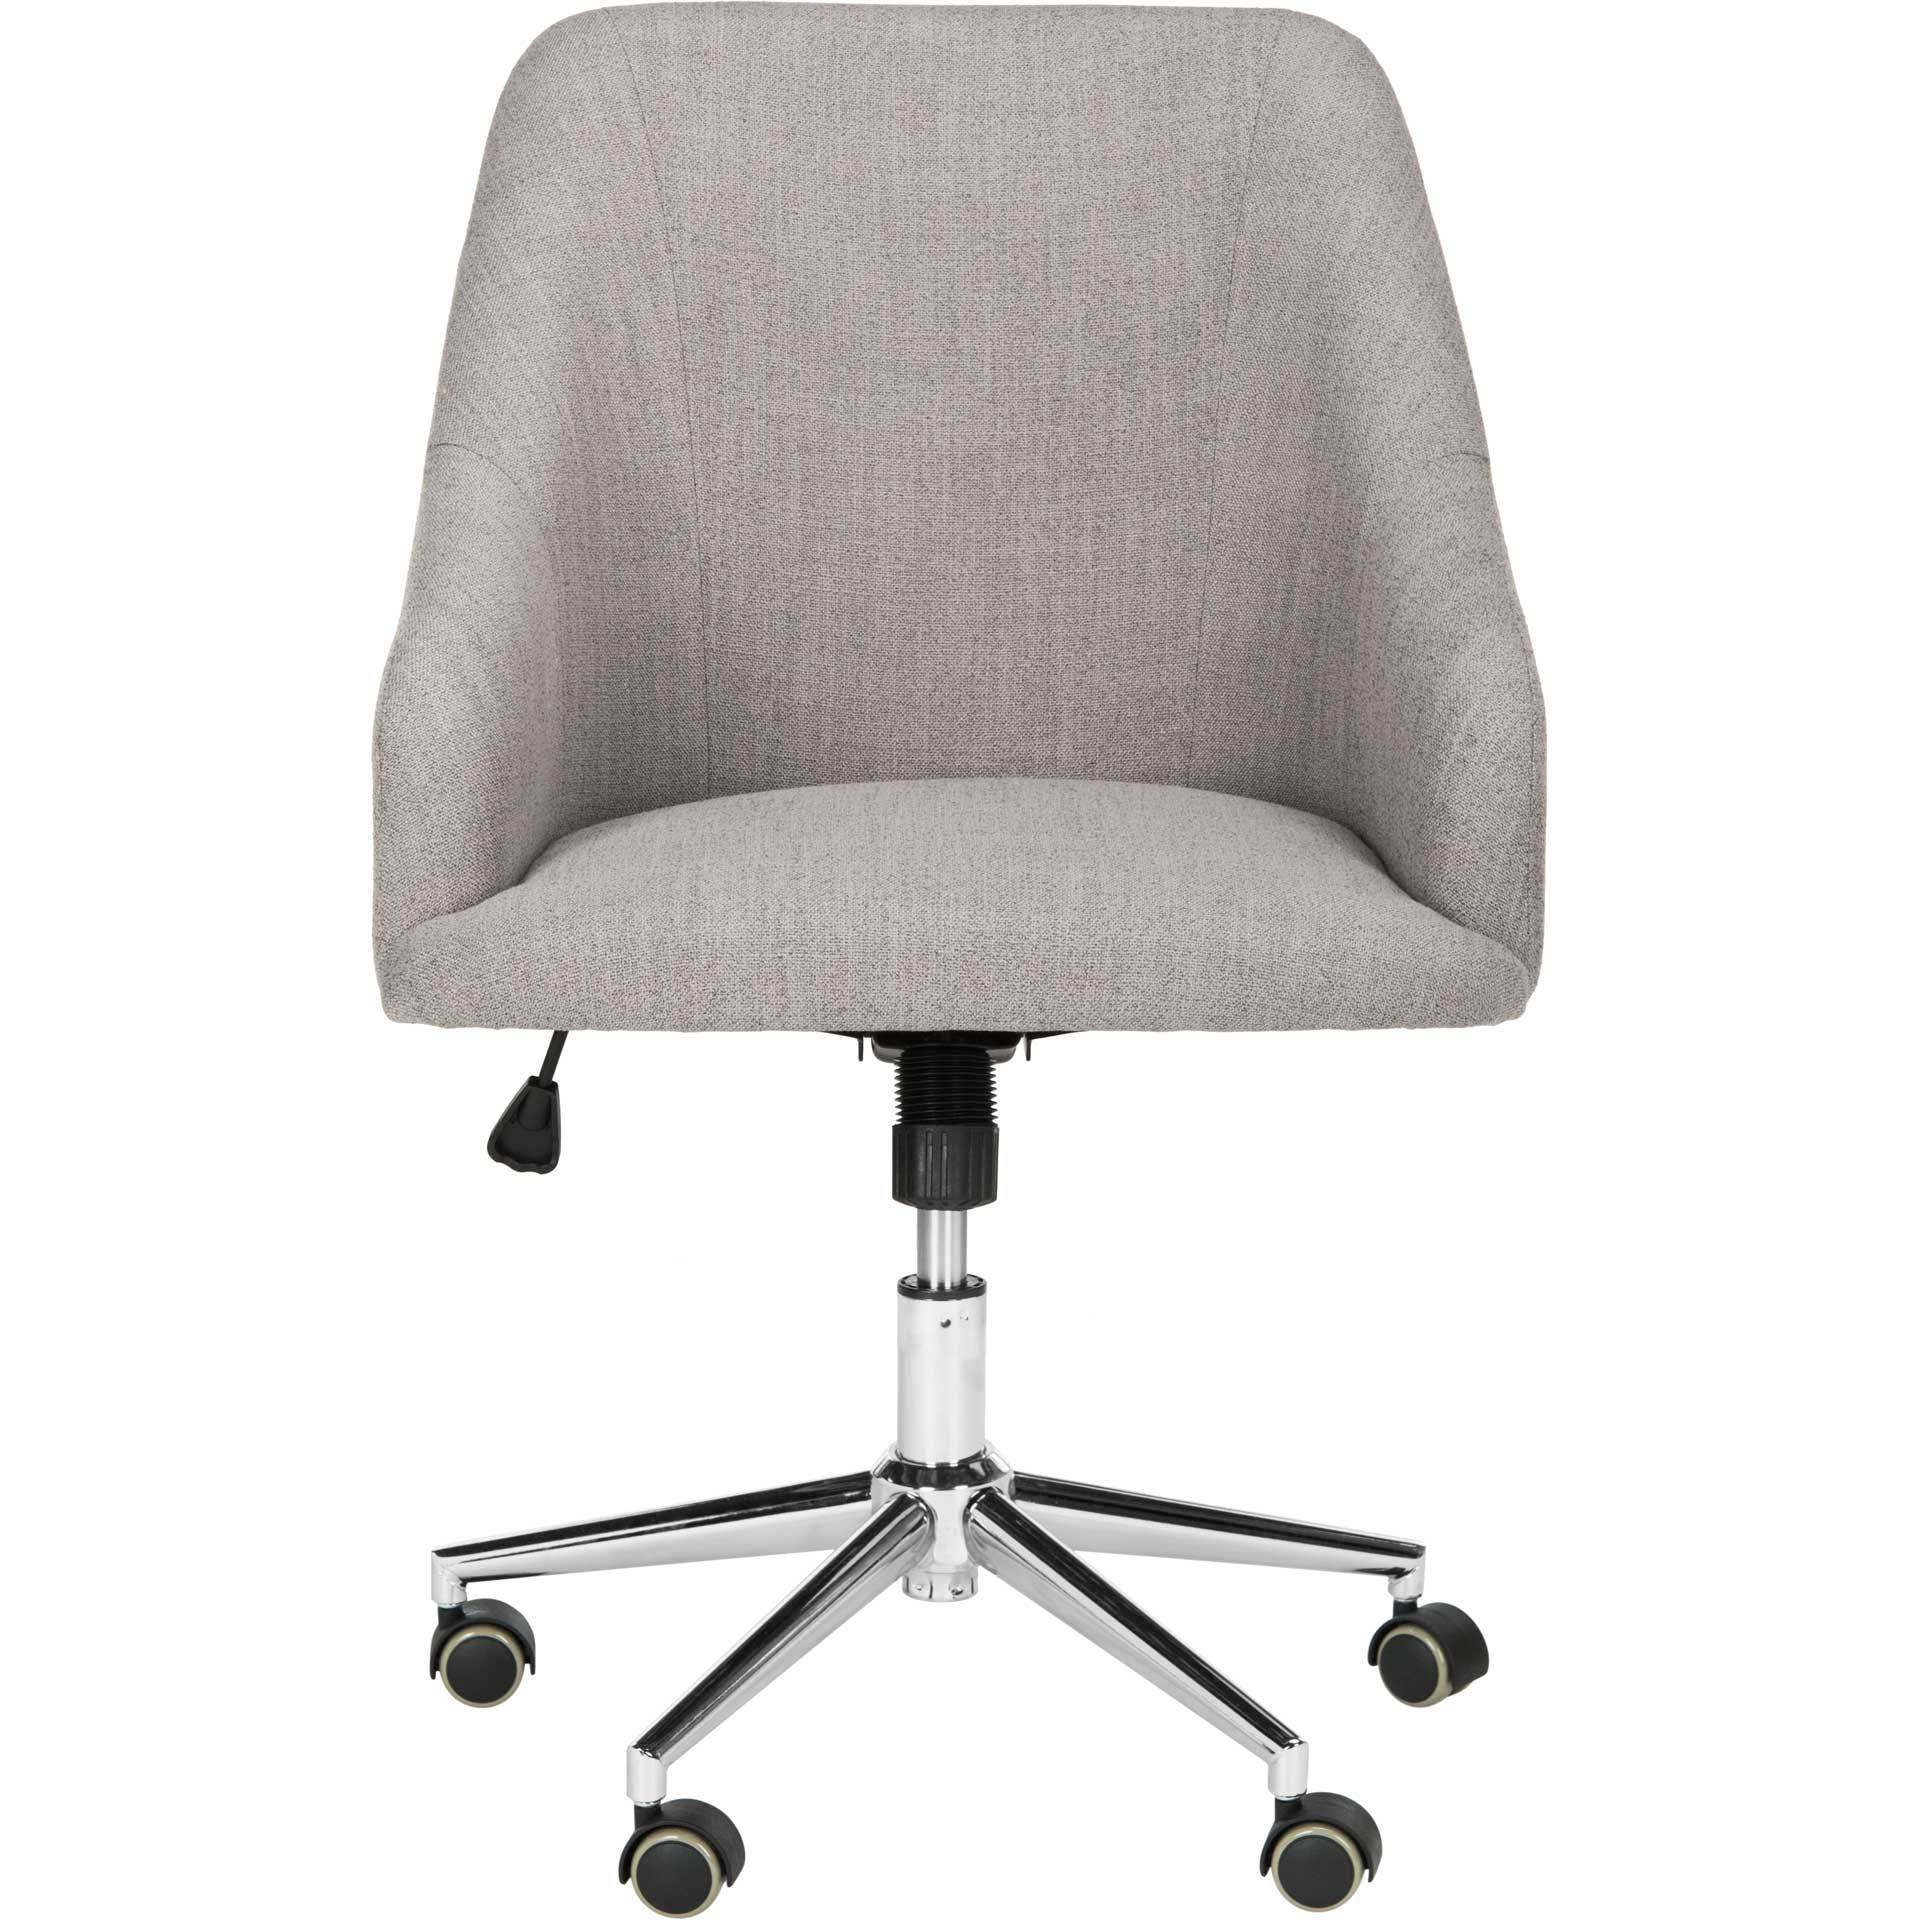 Adele Linen Chrome Leg Swivel Office Chair